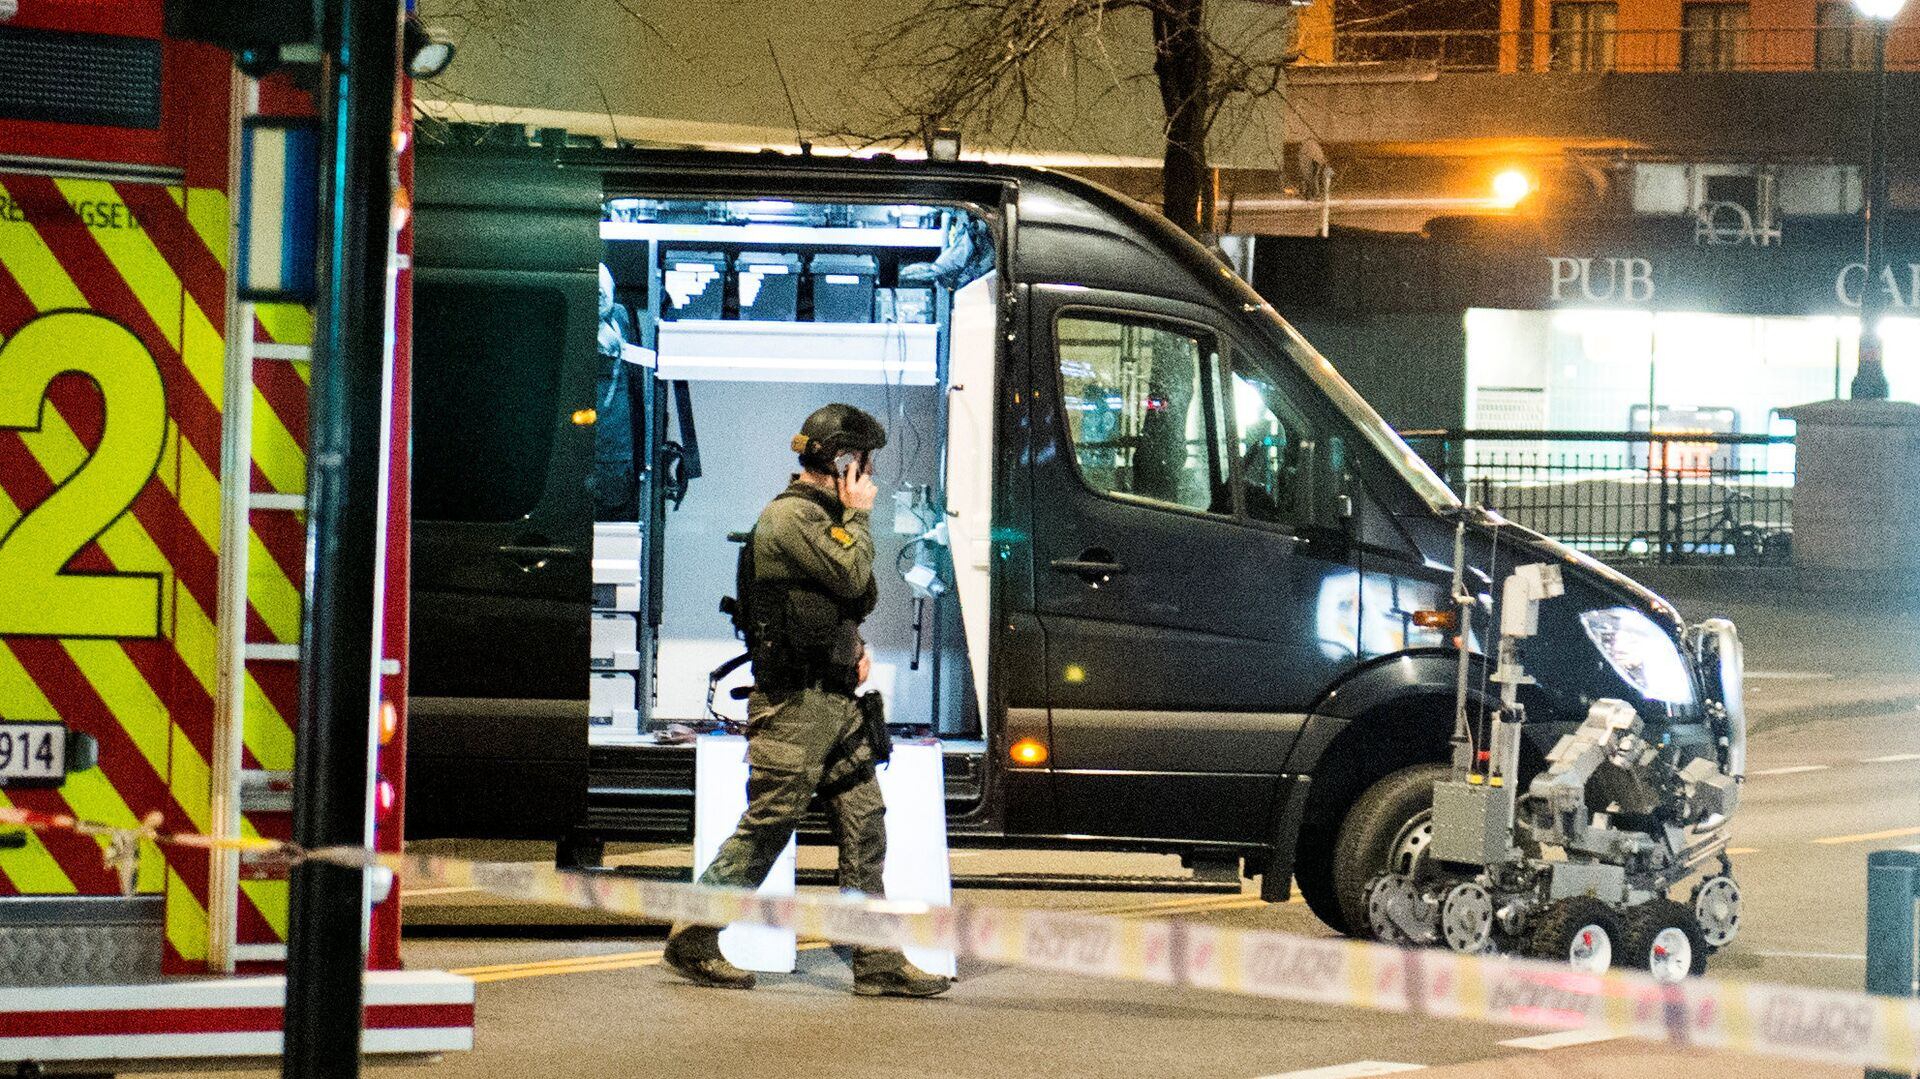 Police have block a area in central Oslo and arrested a man after the discovery of bomb-like device, in Oslo, Norway April 8, 2017 - Sputnik International, 1920, 13.10.2021